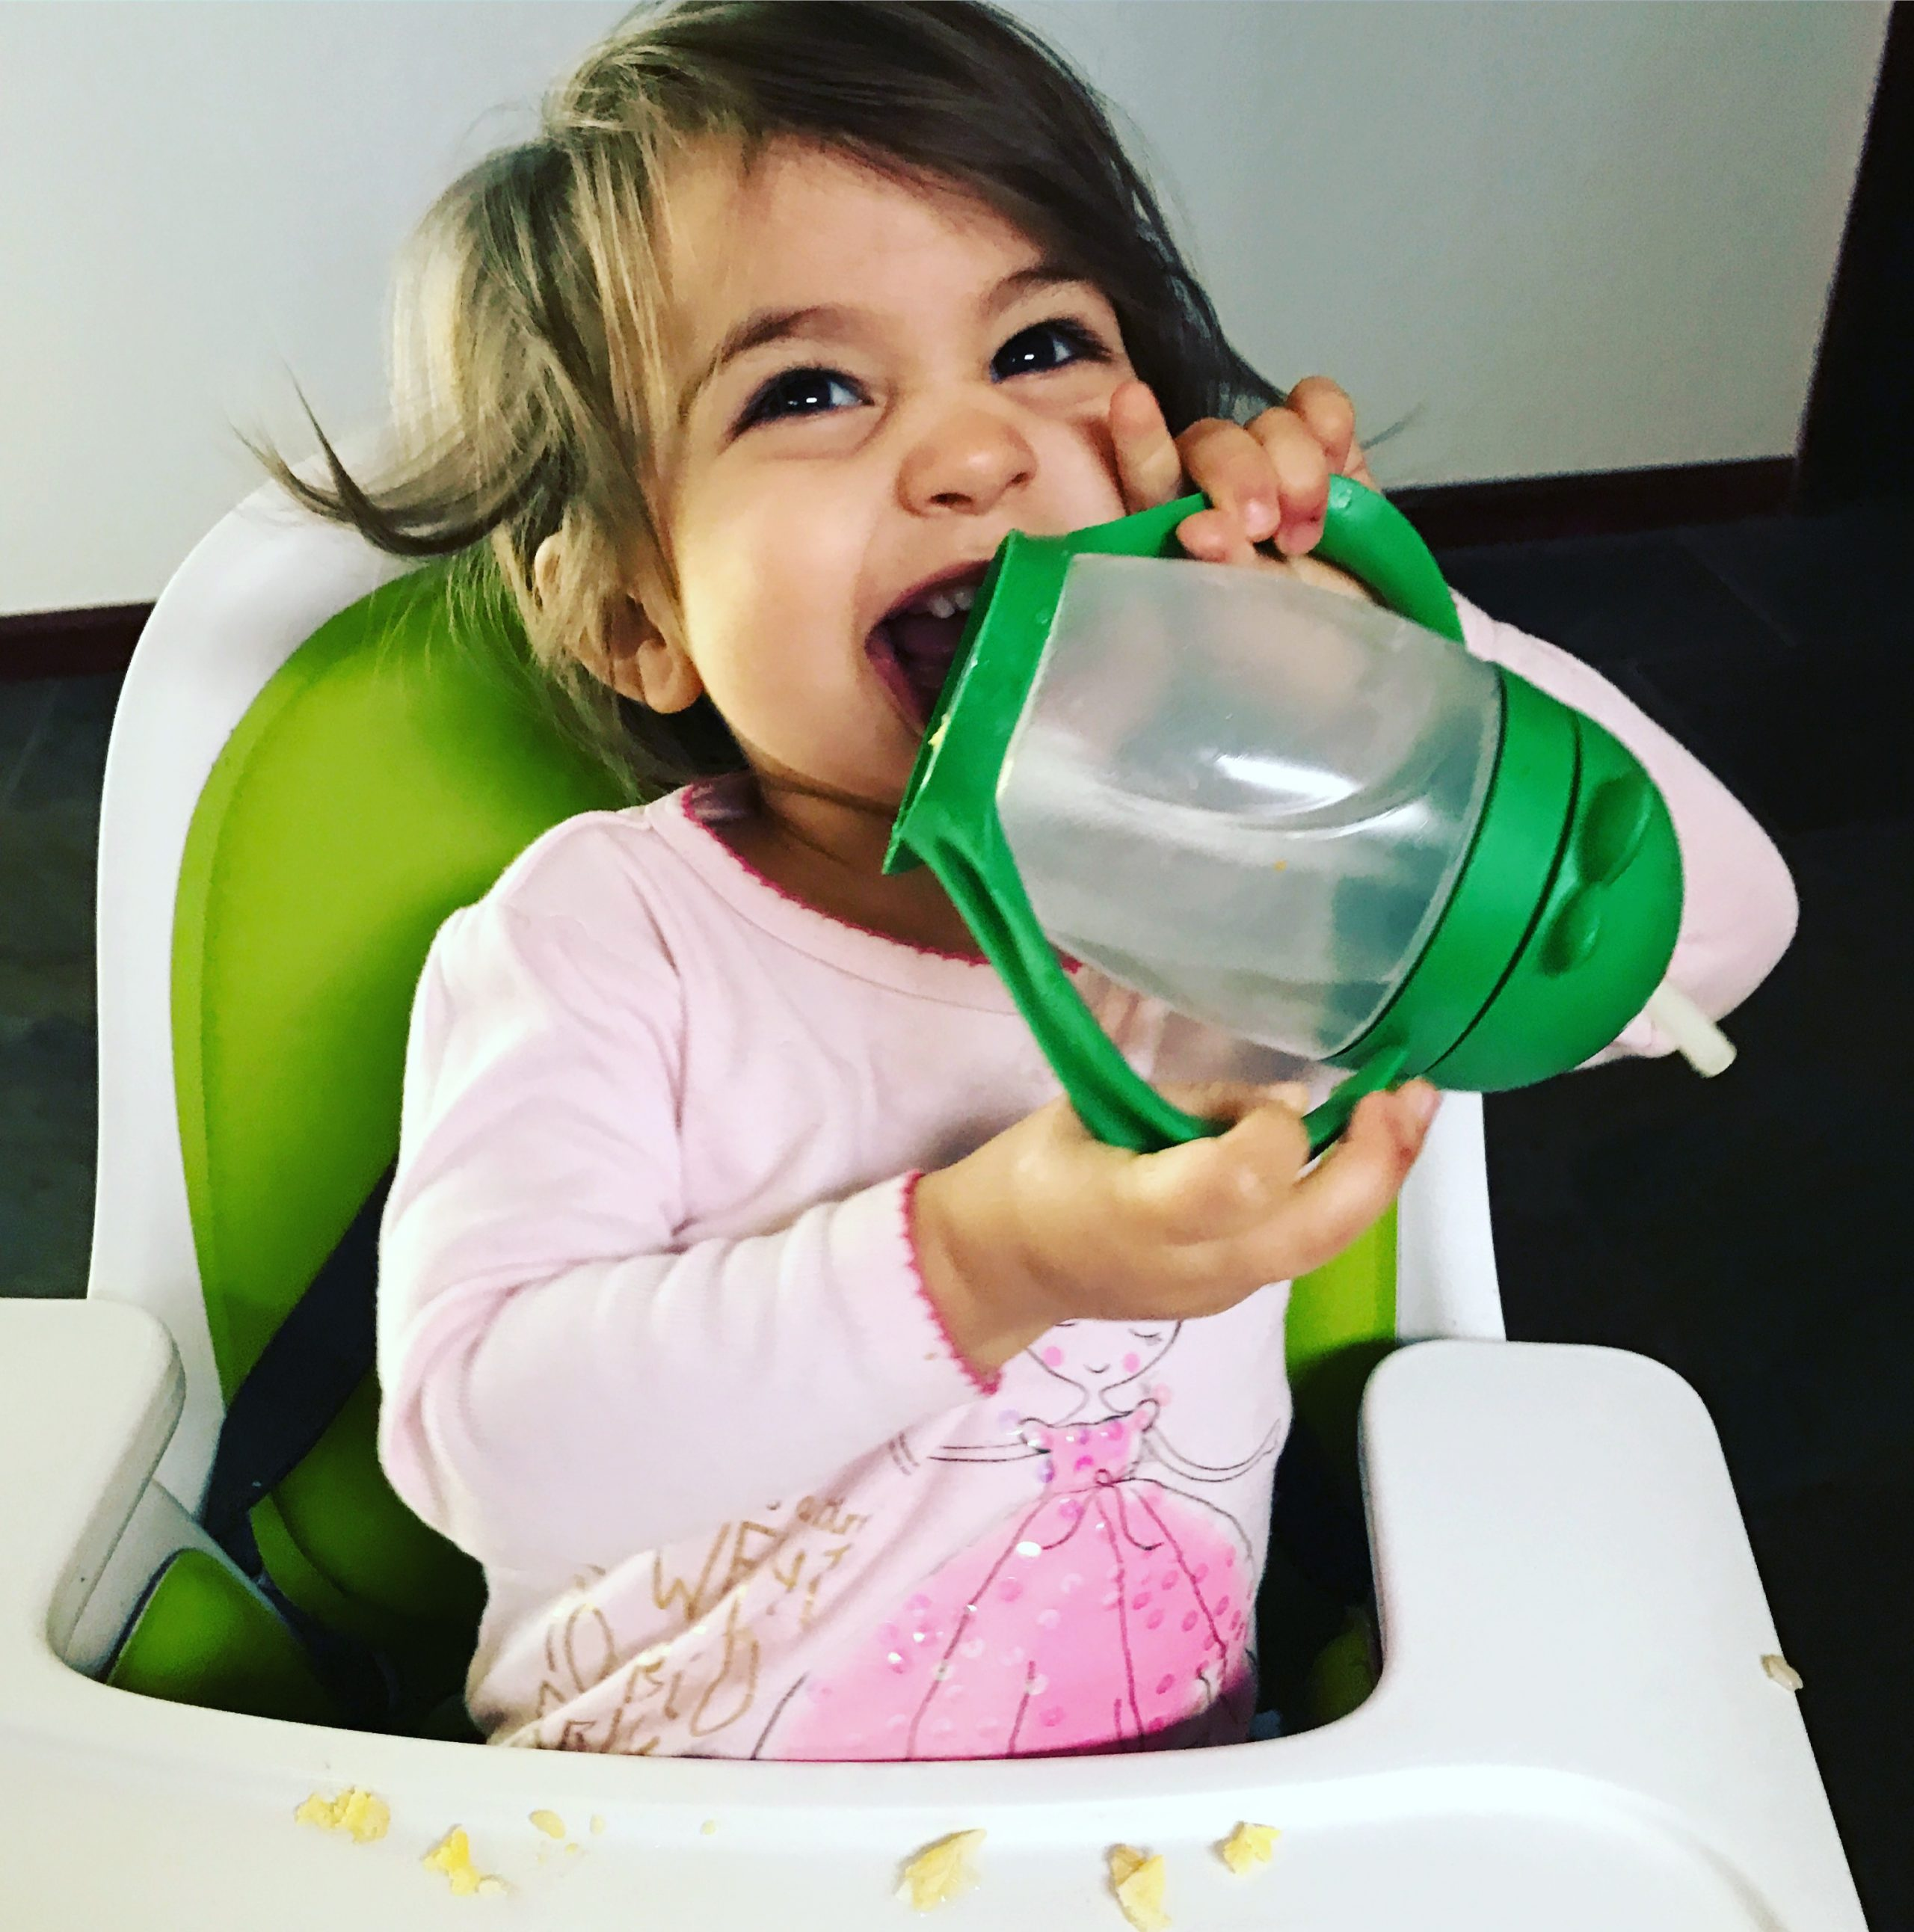 P and her lollacup